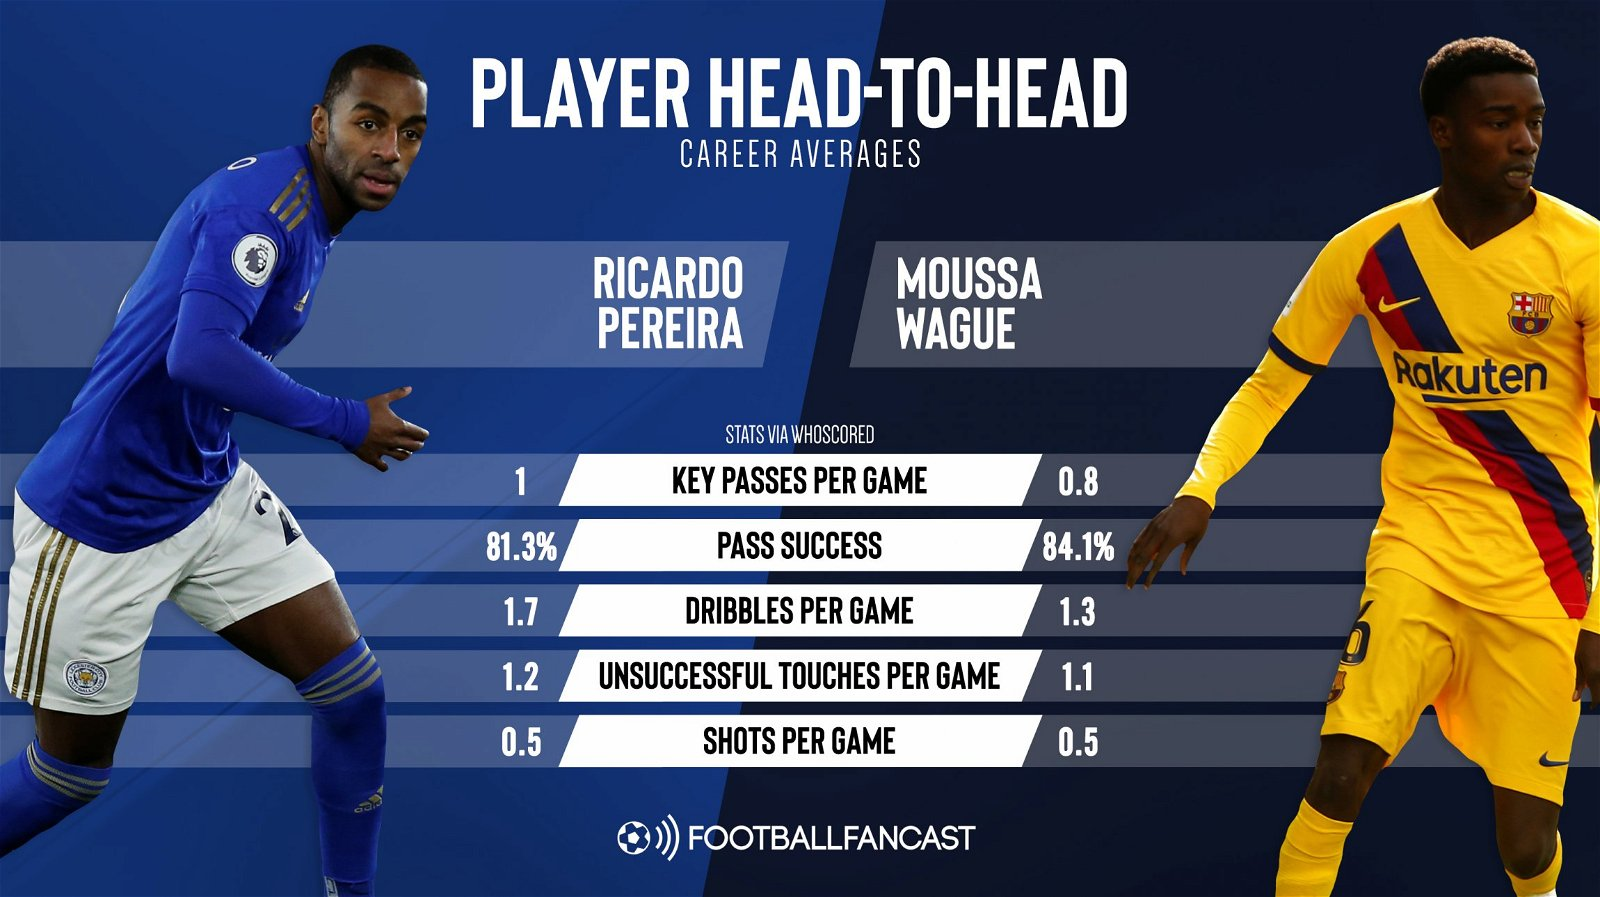 Ricardo Pereira and Moussa Wague career averages - Rodgers is foolish to rule out move for Leicester's potential Pereira successor - opinion